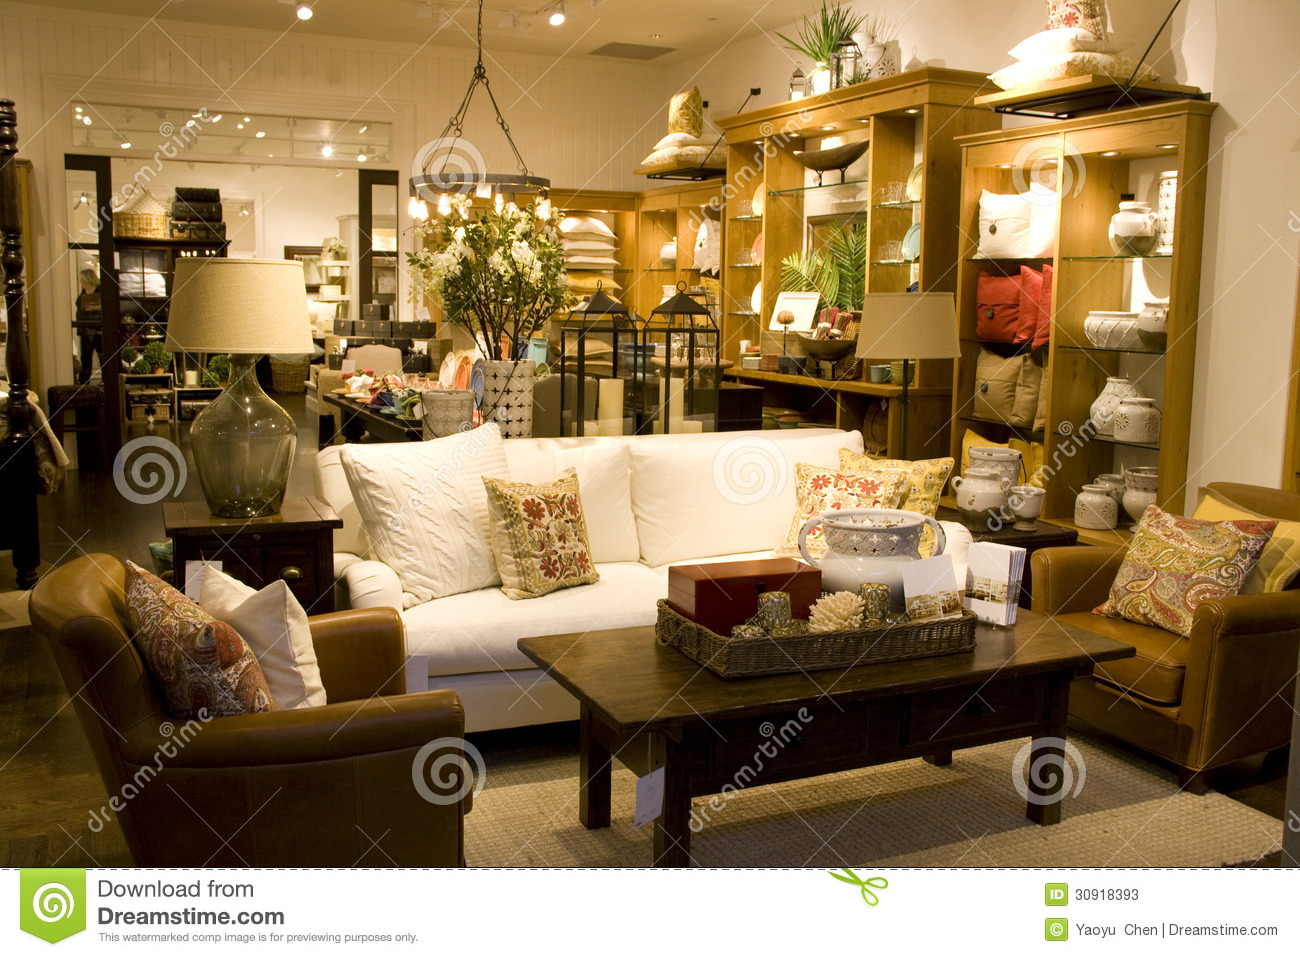 Home decor outlet beautiful the home decor outlet with for Home decor outlet near me